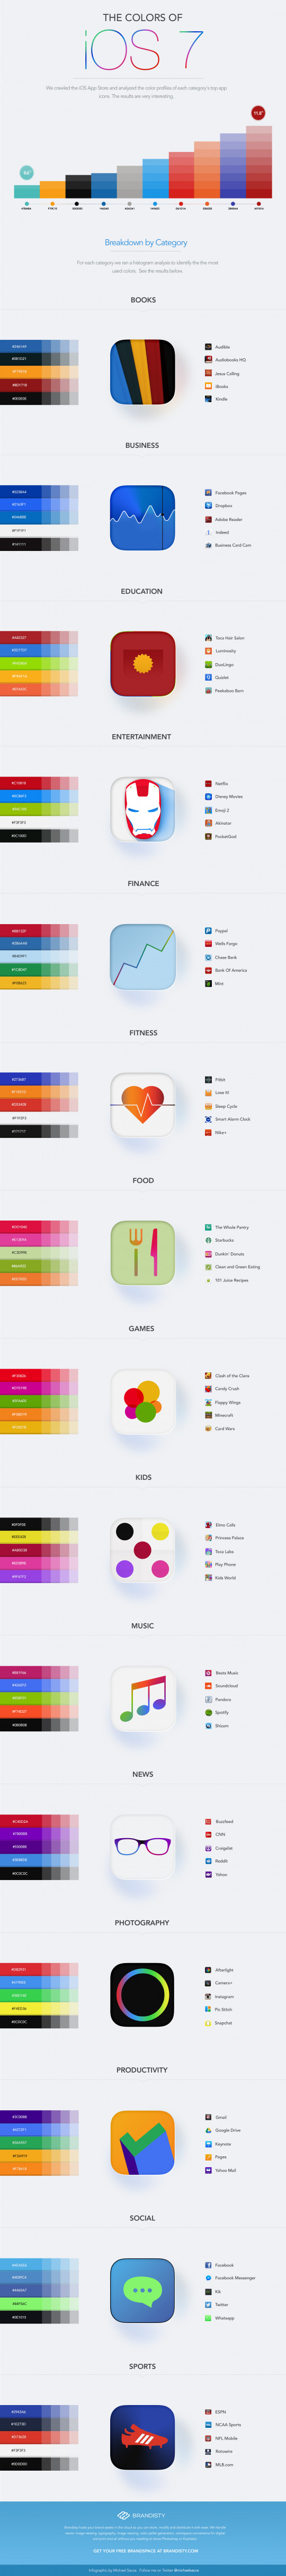 The colors of iOS7